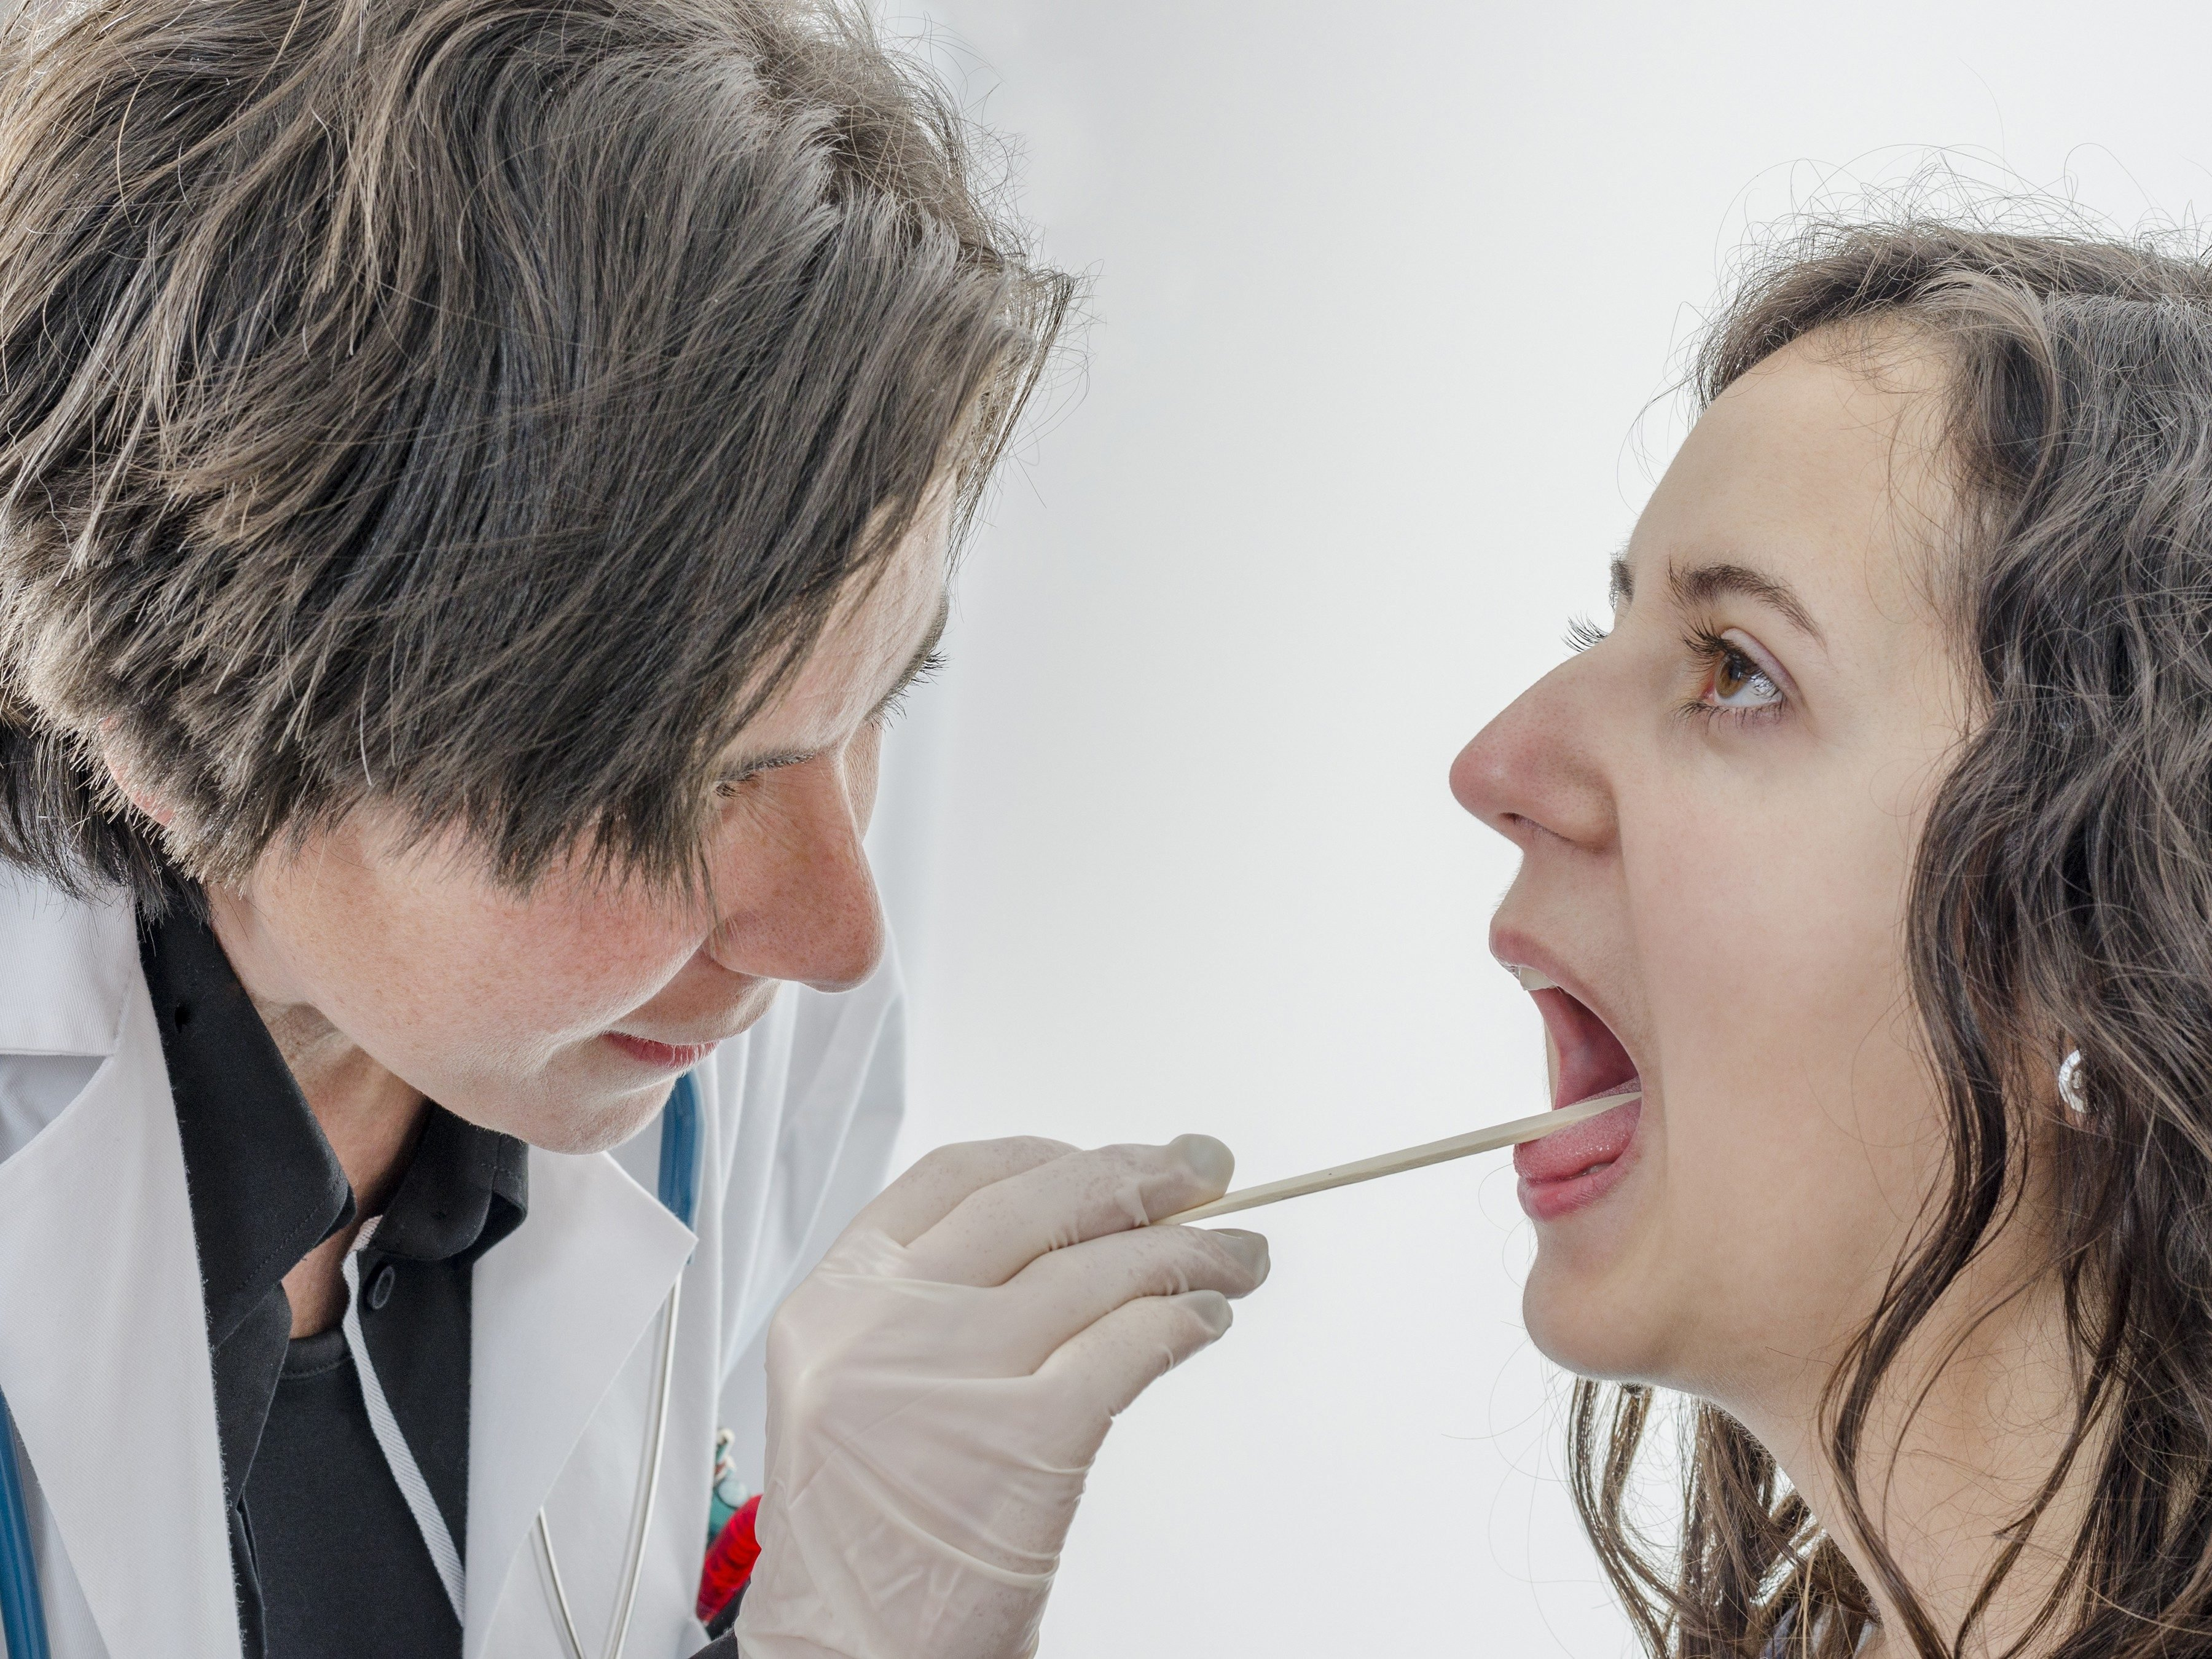 4. Try an over-the-counter saliva substitute